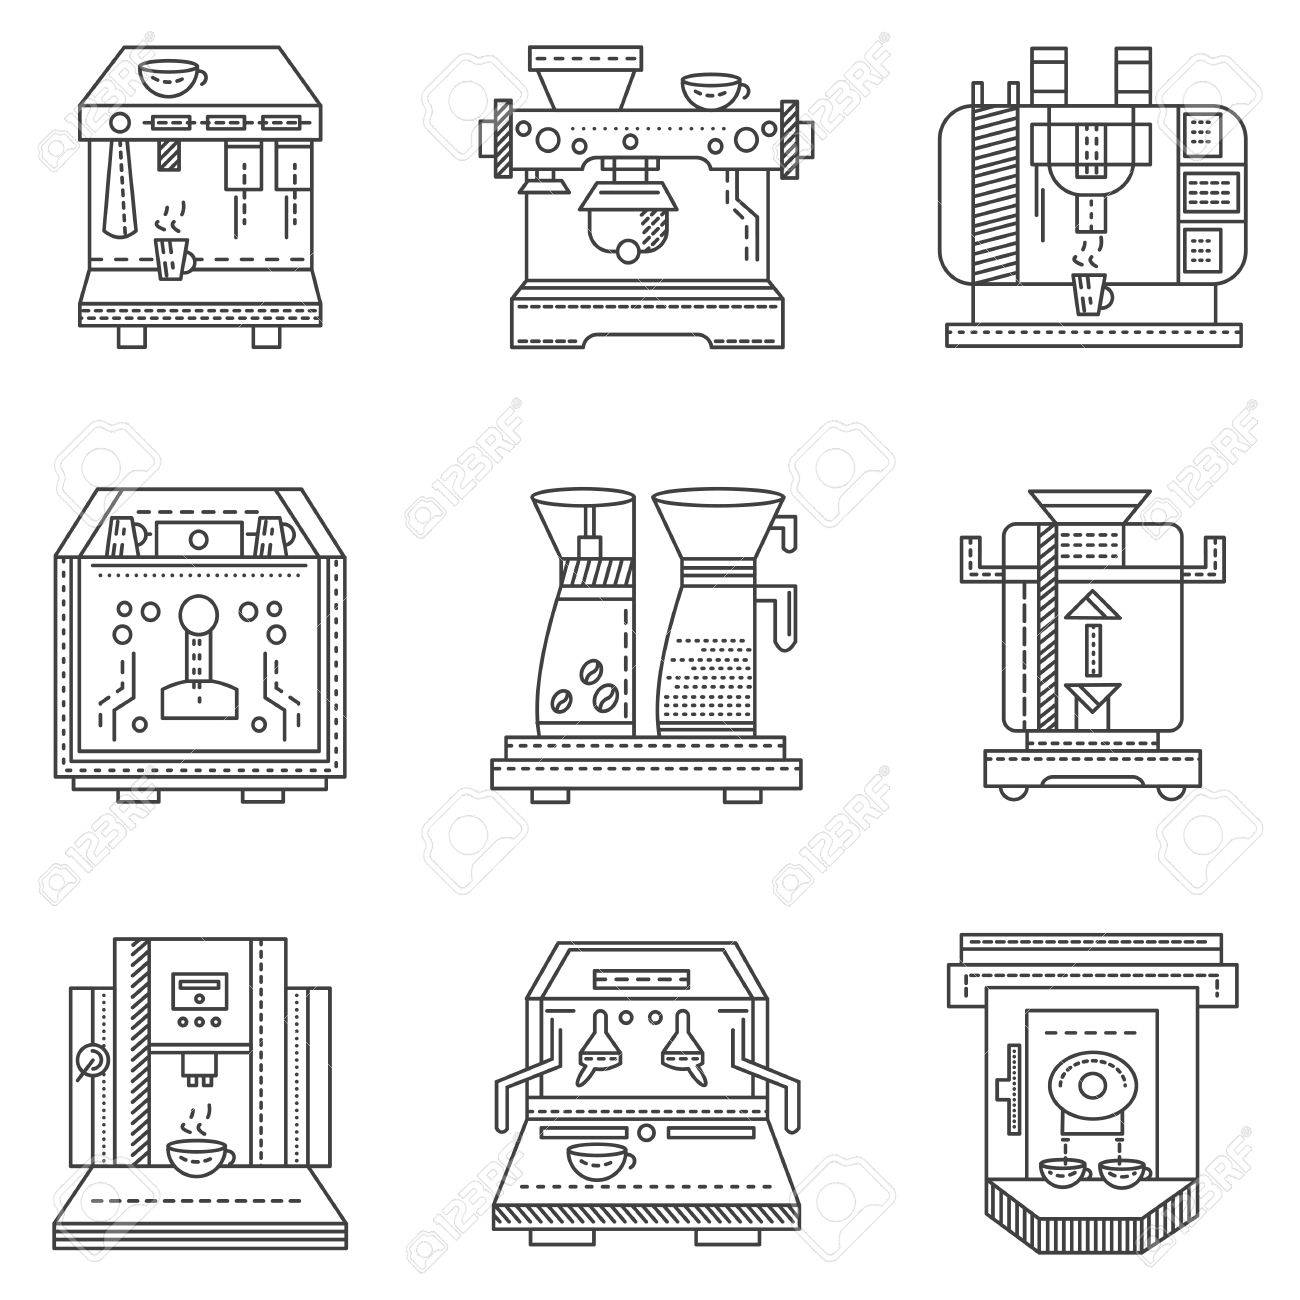 Set Of Flat Line Design Icons For Cafe And Restaurant Equipment